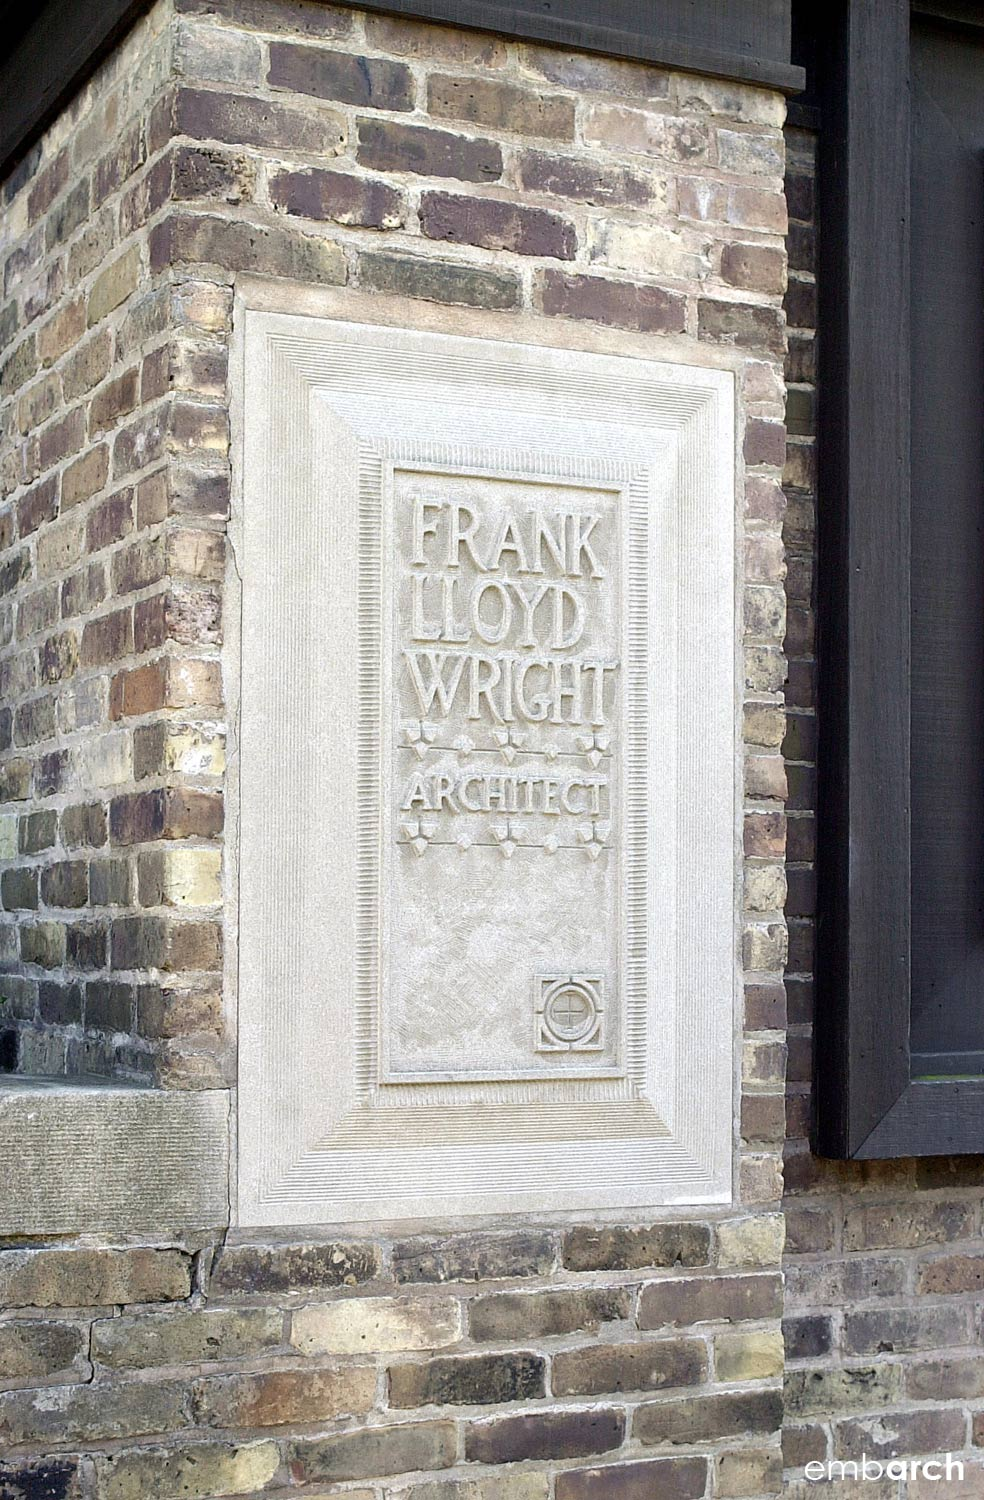 Frank Lloyd Wright Home and Studio - entry plaque